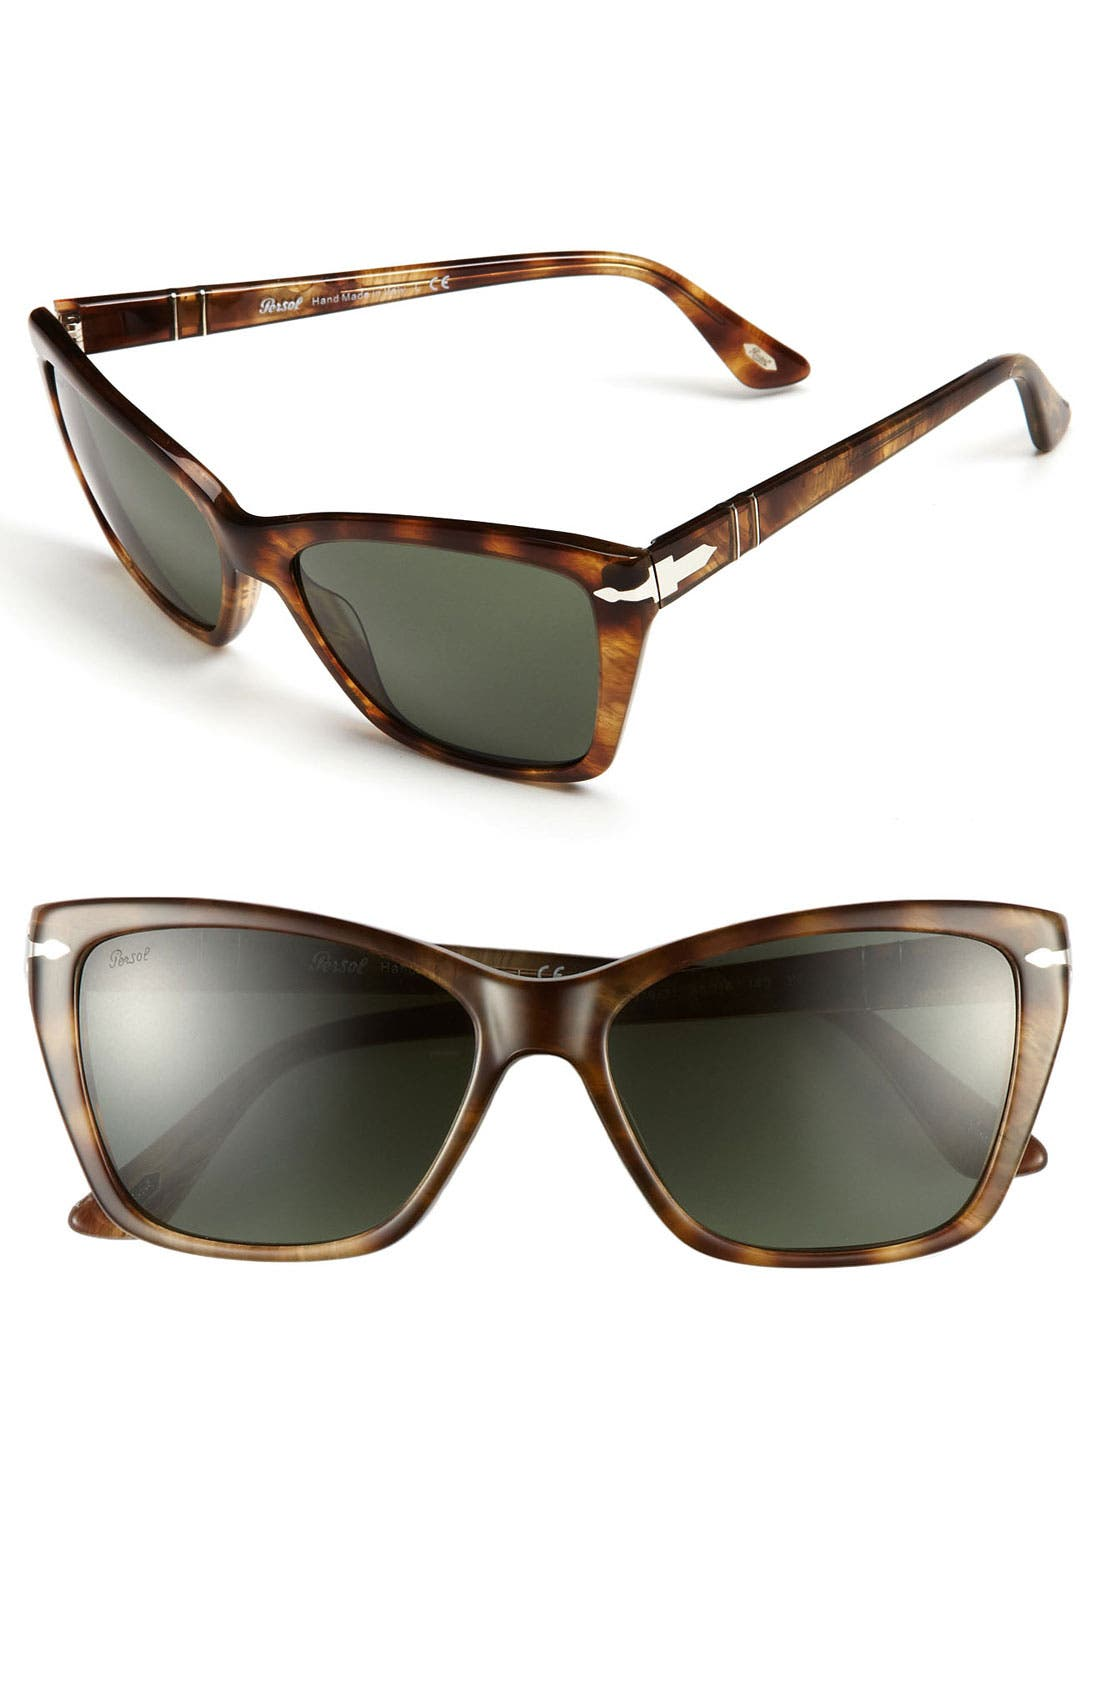 Main Image - Persol 56mm Sunglasses